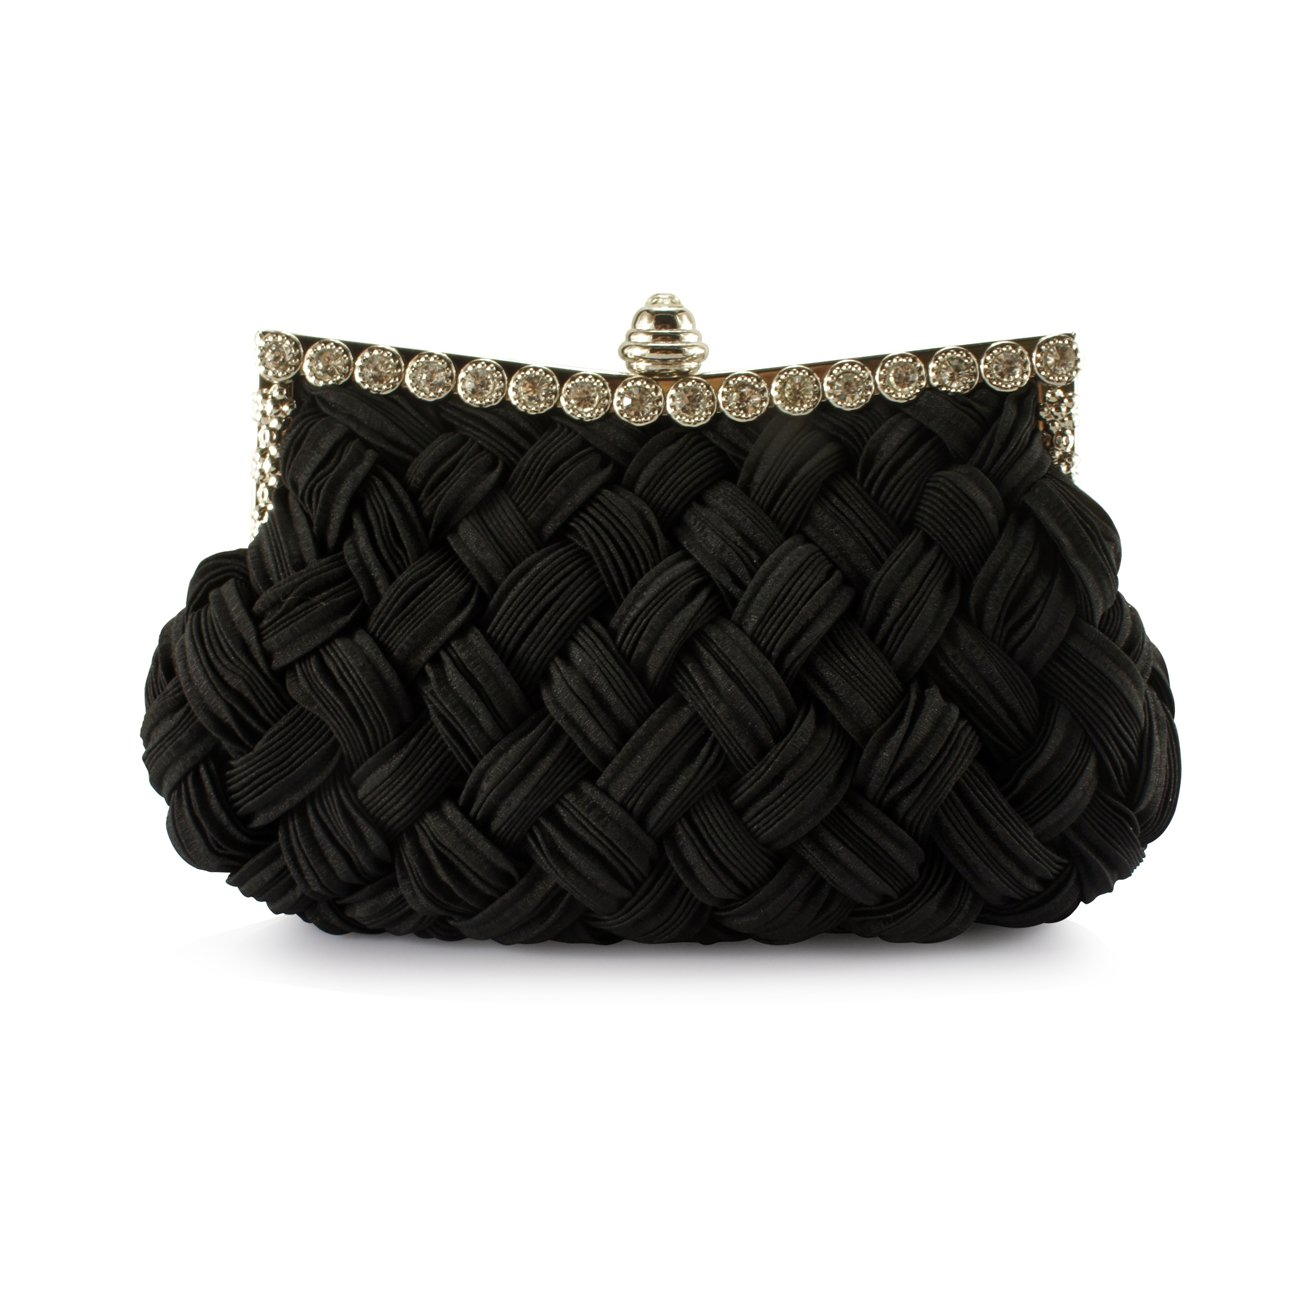 Fit & Wit Womens Pleated and Braided Evening Cocktail Wedding Party Handbag Clutch Purse Shoulder Bag - Black